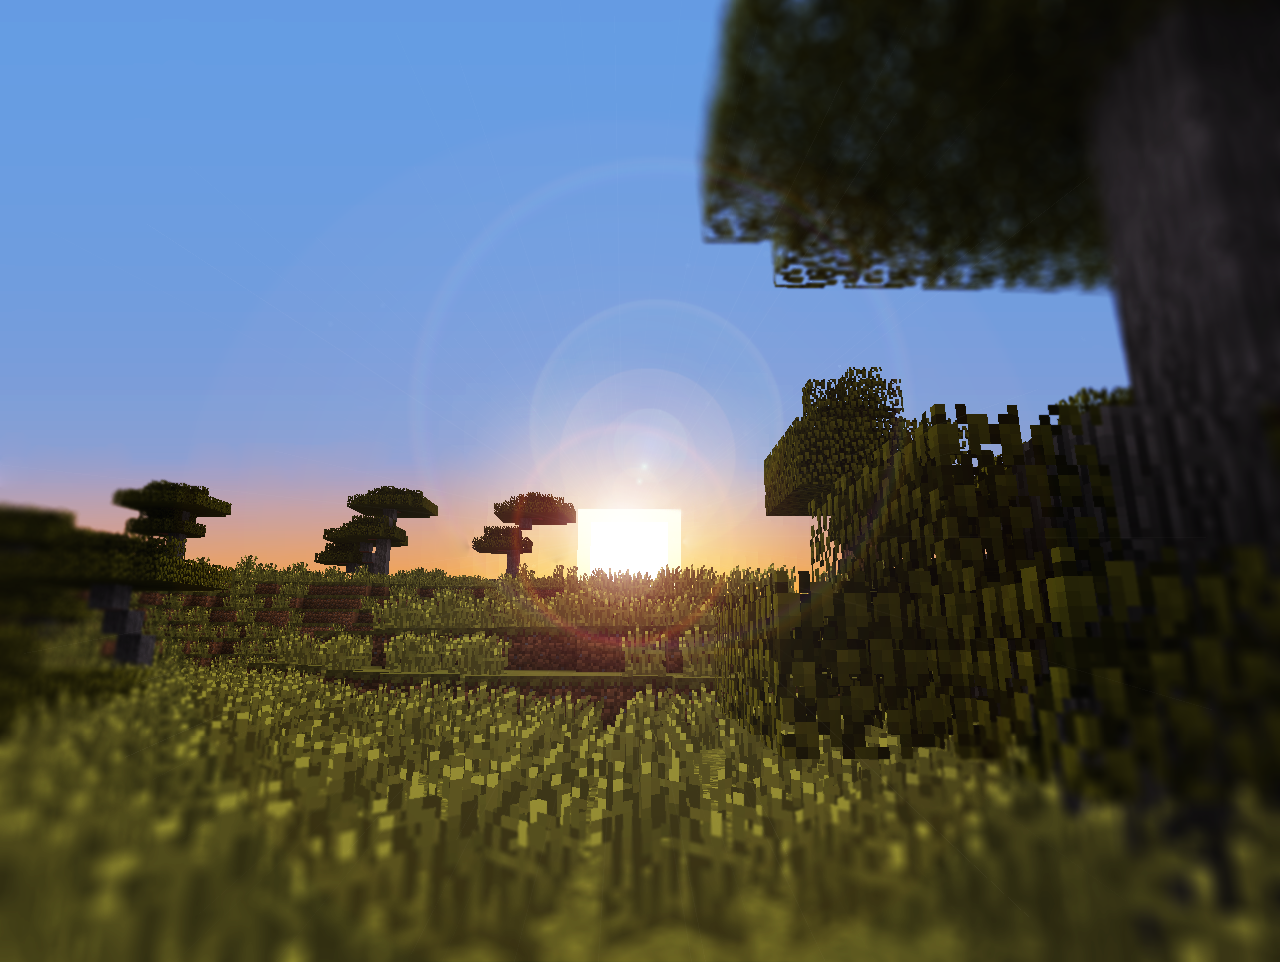 Fond Minecraft Png 2 Png Image